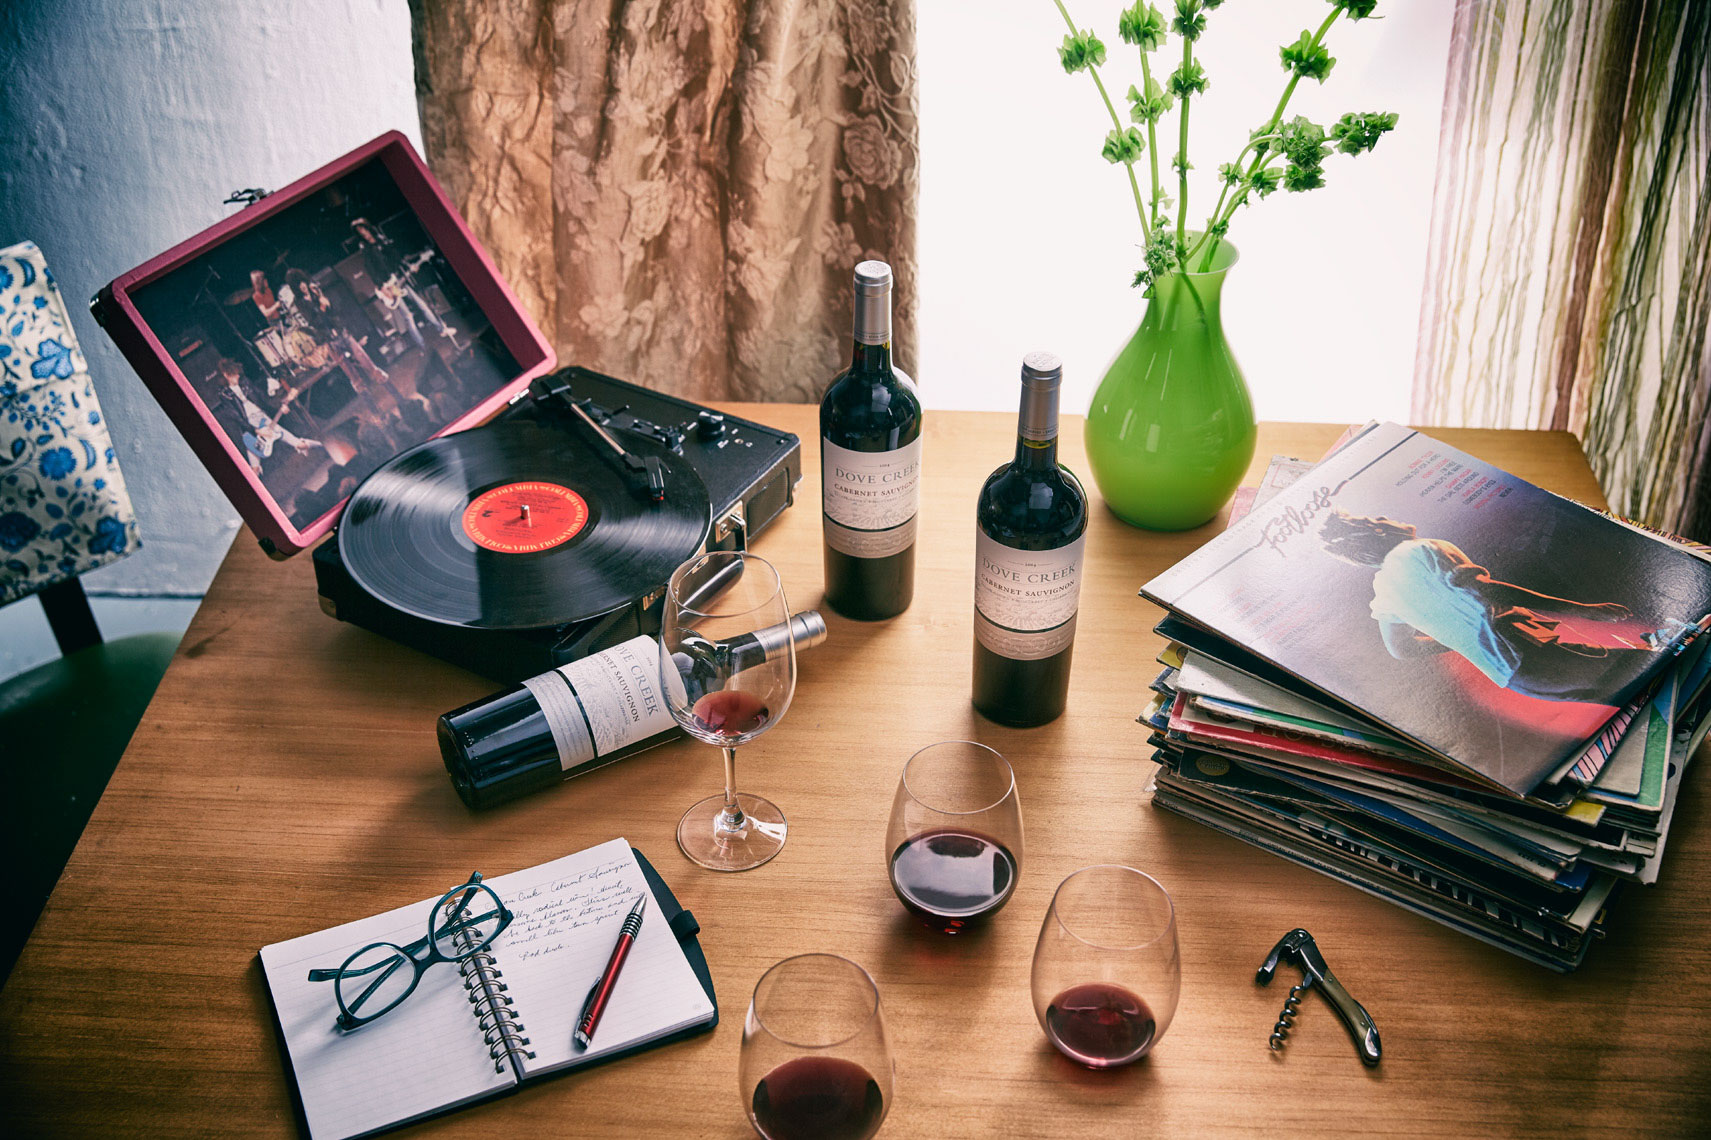 table with 3 bottles of wine and wine glasses with a record player San Francisco lifestyle photographer